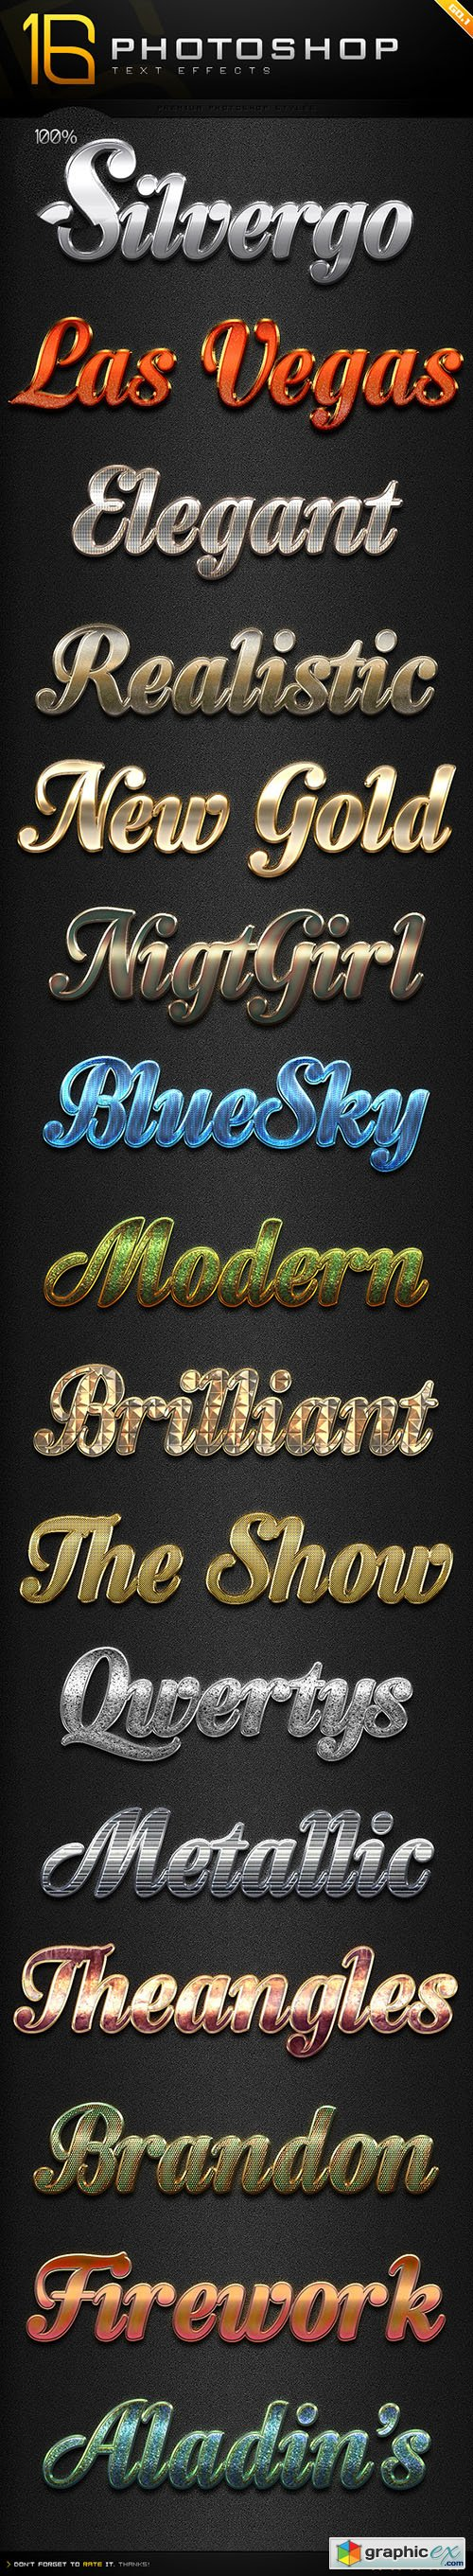 16 Photoshop Text Effect Styles GO 1